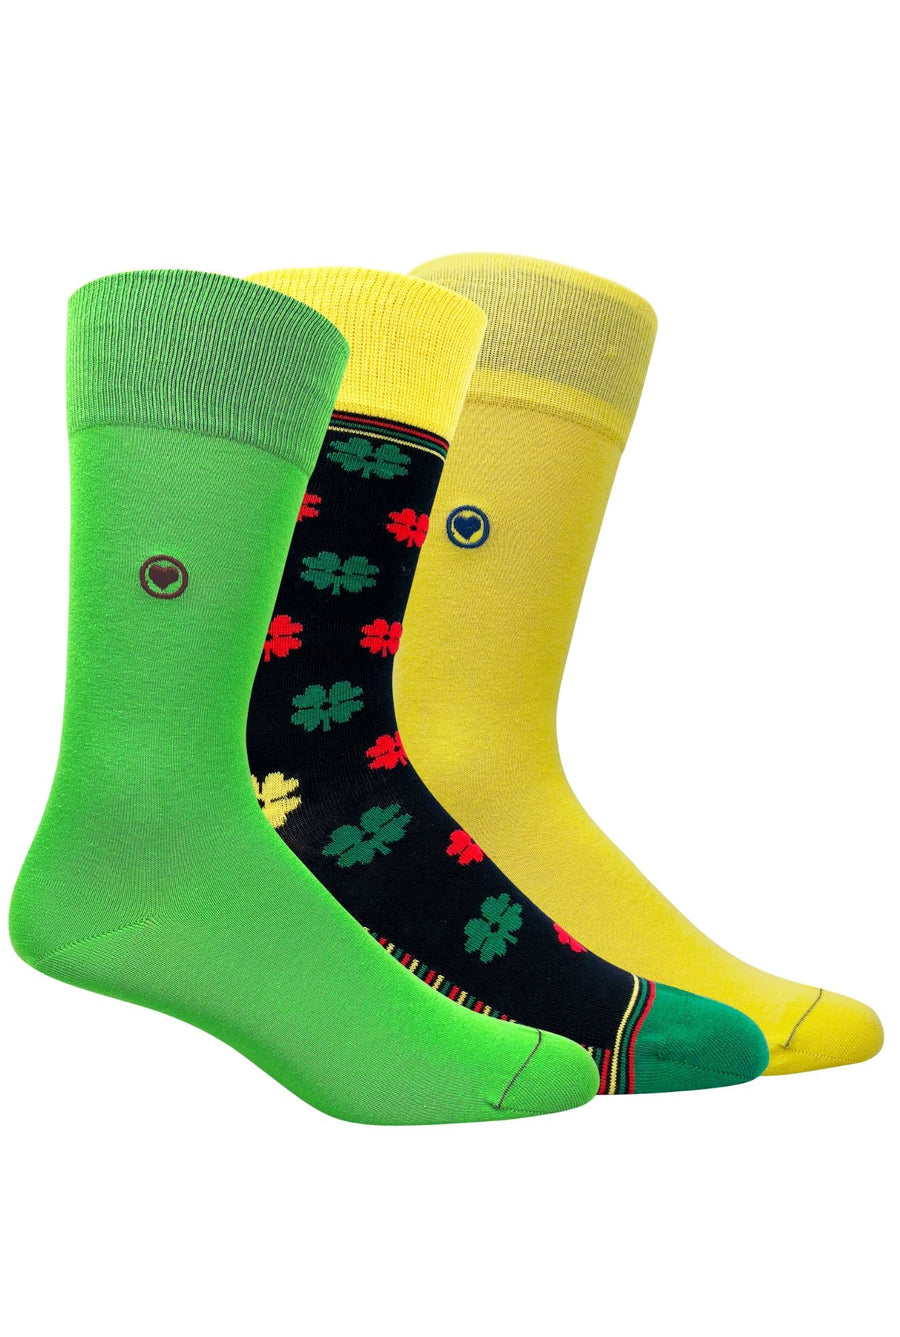 Hawaii Socks Bundle (M)